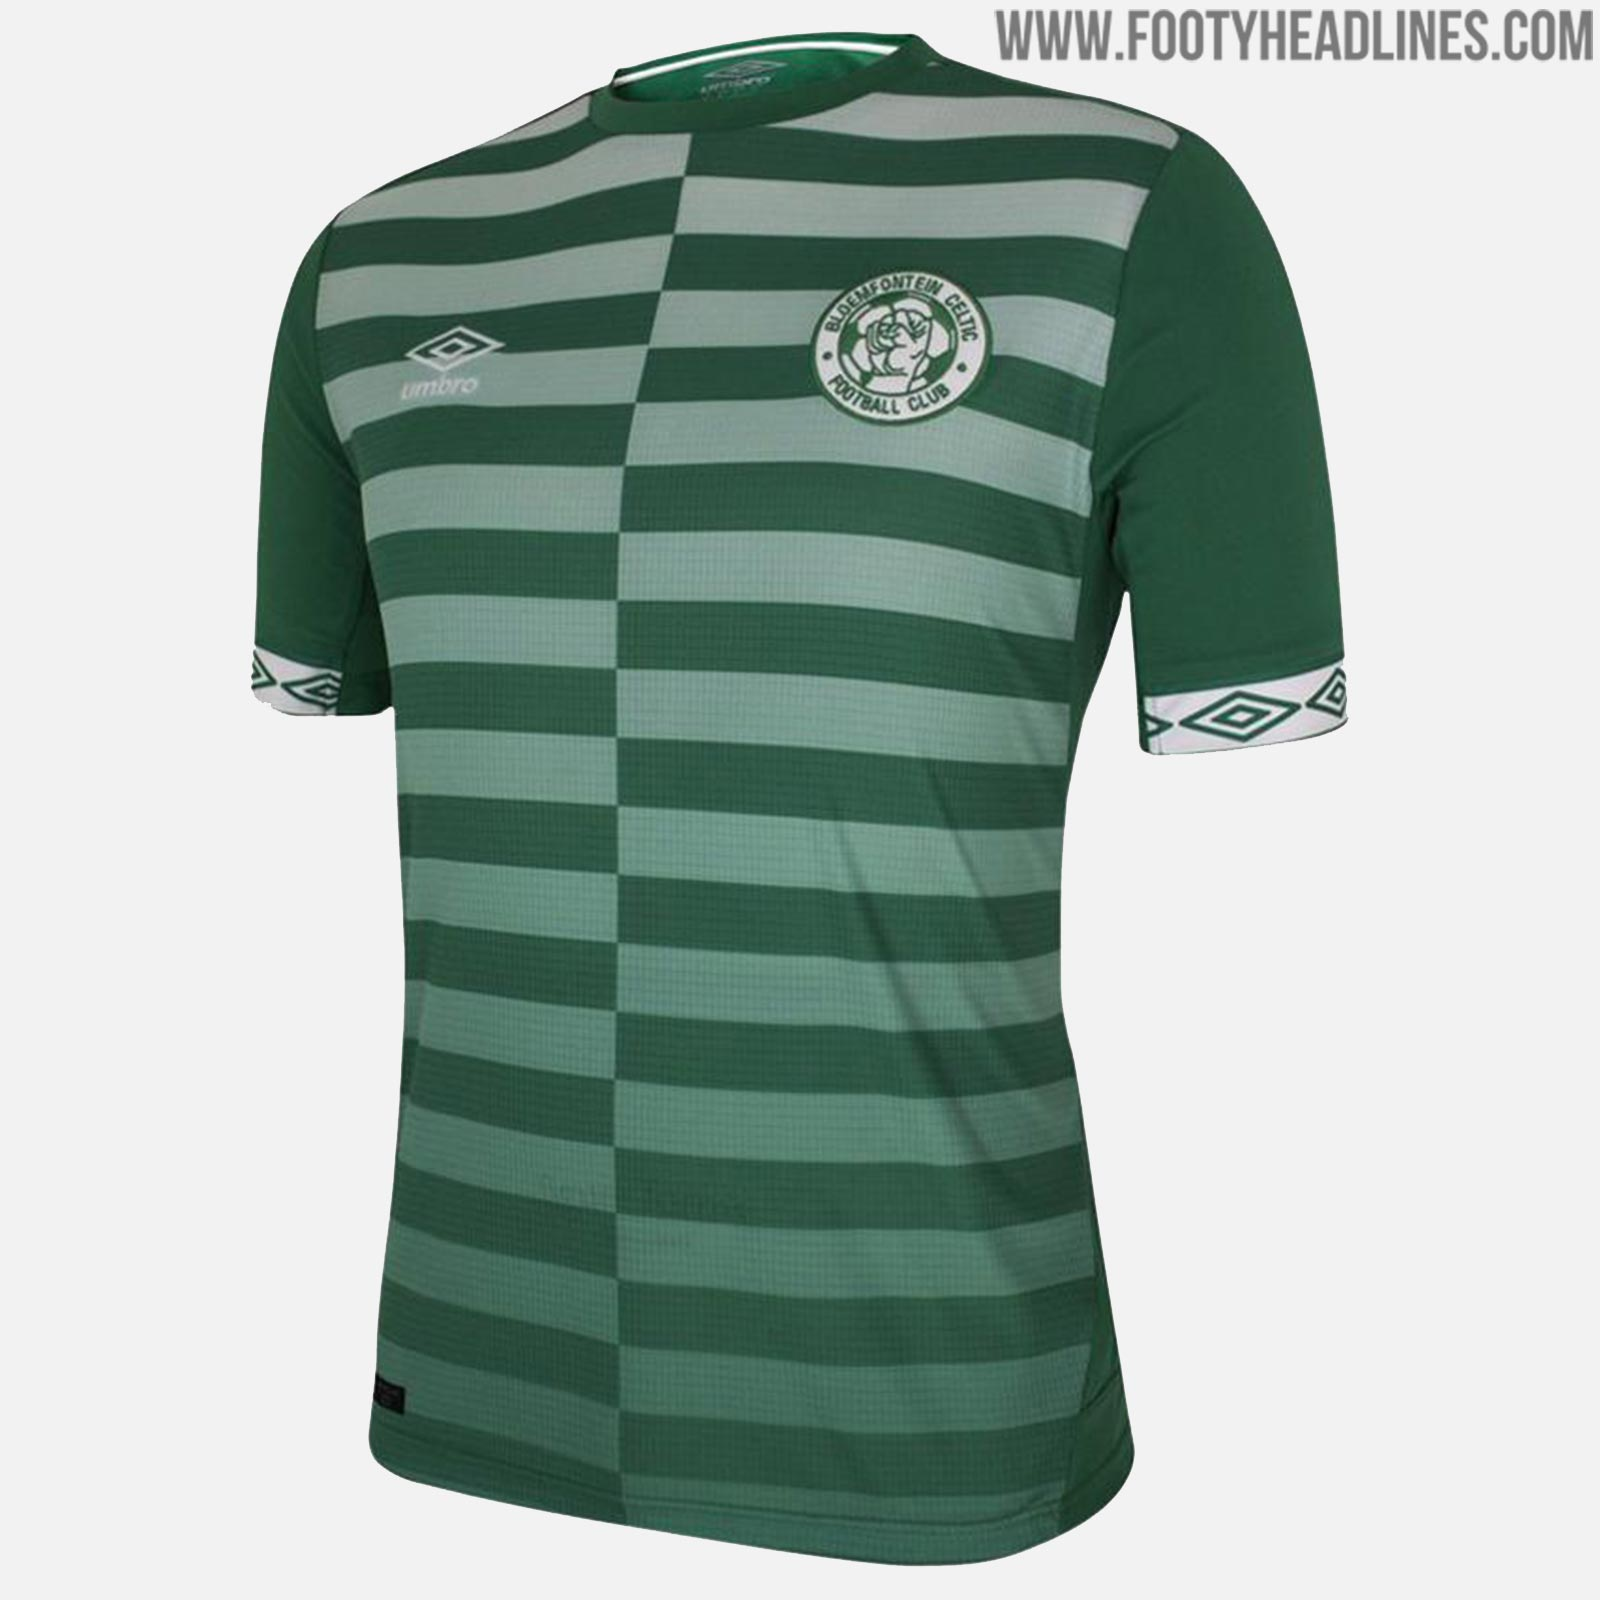 best website 1a136 e3644 Stunning Umbro Bloemfontein Celtic 18-19 Home & Away Kits ...